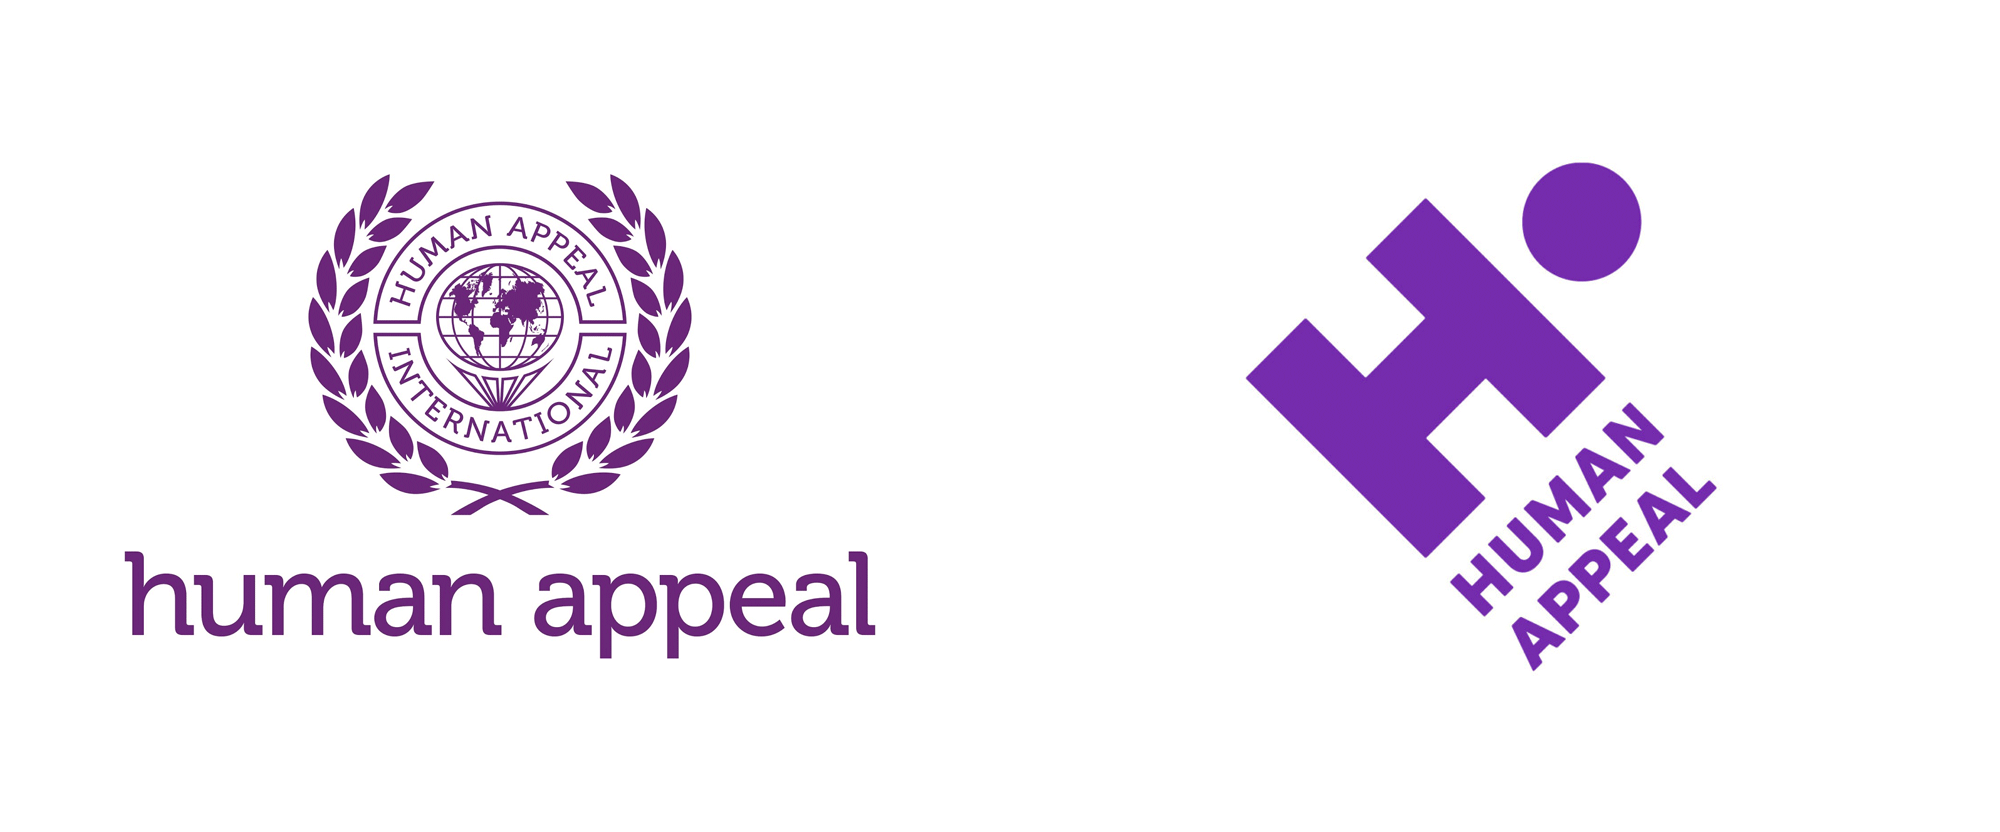 New Logo and Identity for Human Appeal by Johnson Banks